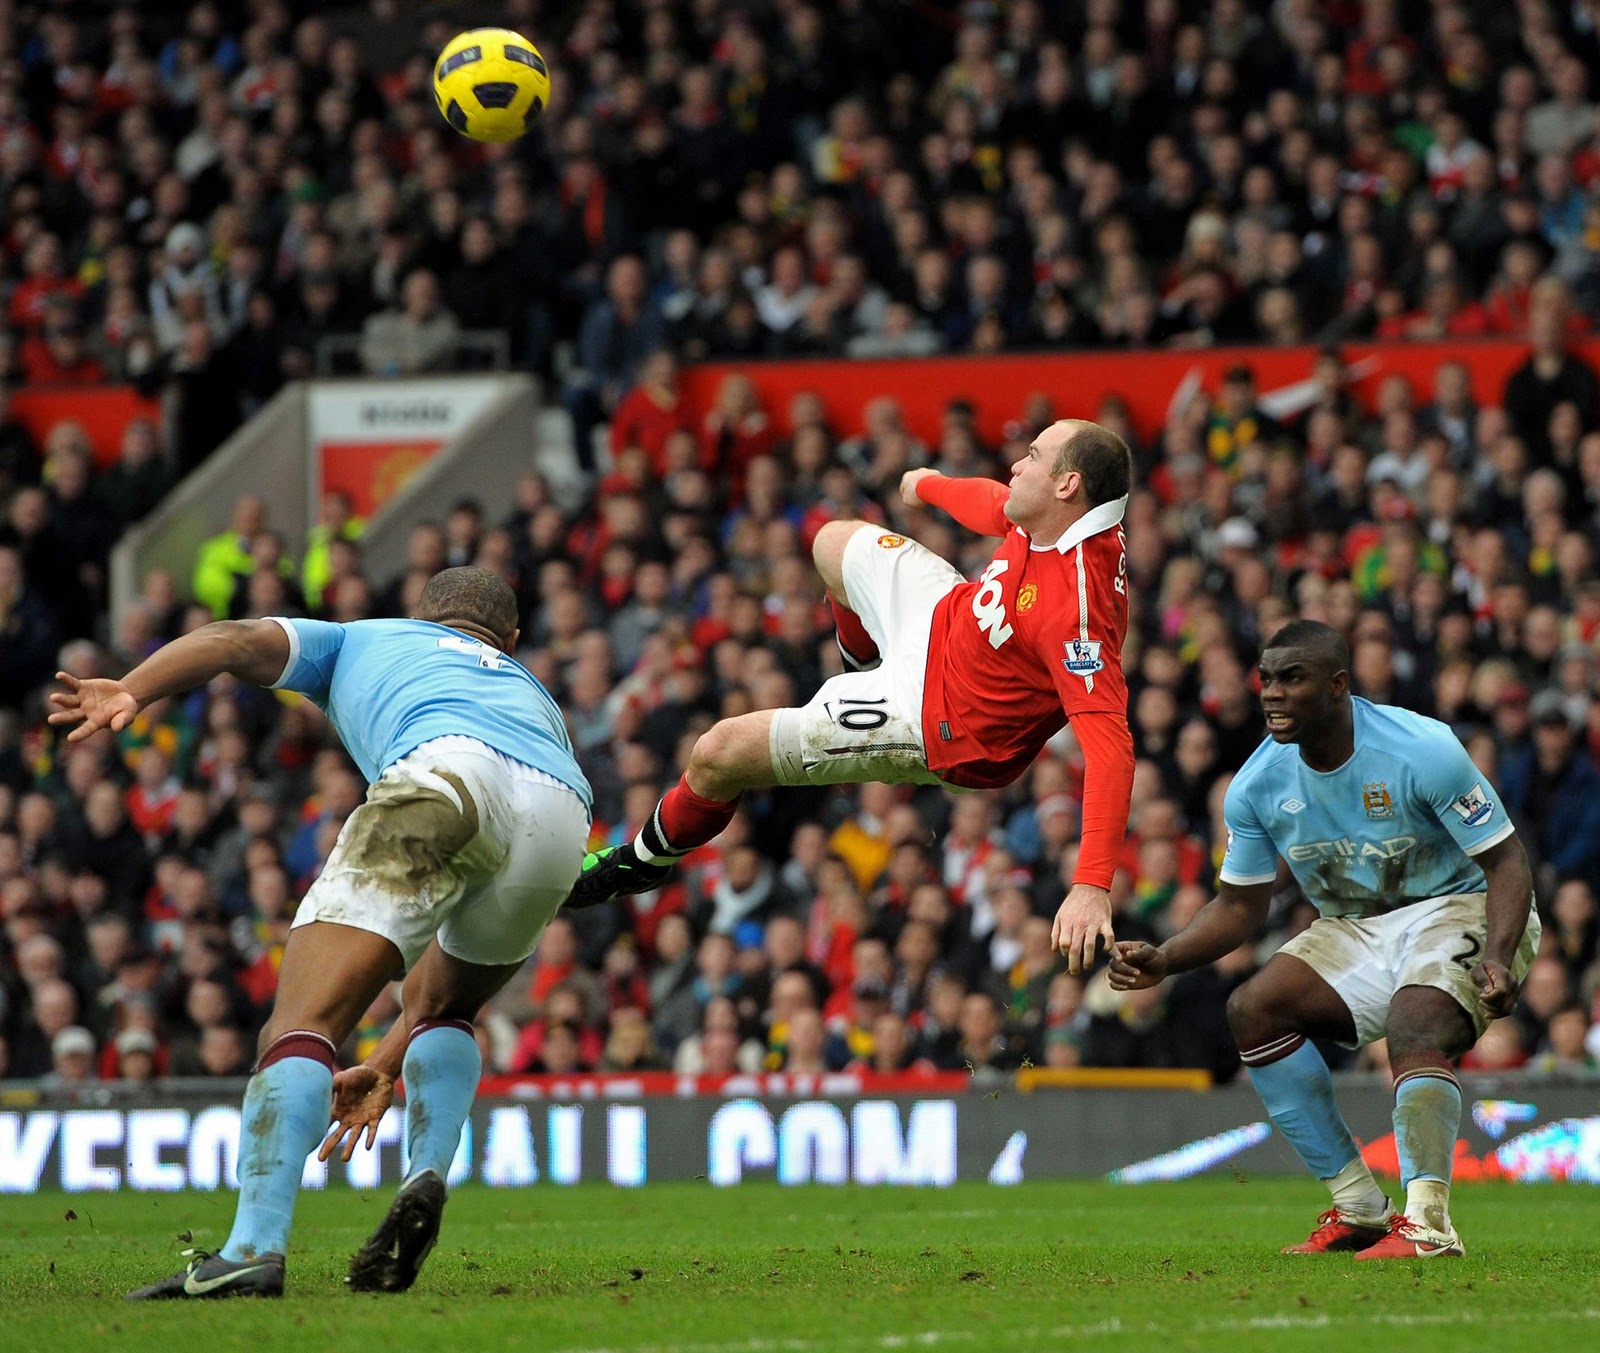 Wayne Rooney Vs Man City Overhead Kick Video Superb Goal by Wayne Rooney Man Utd vs Manchester City